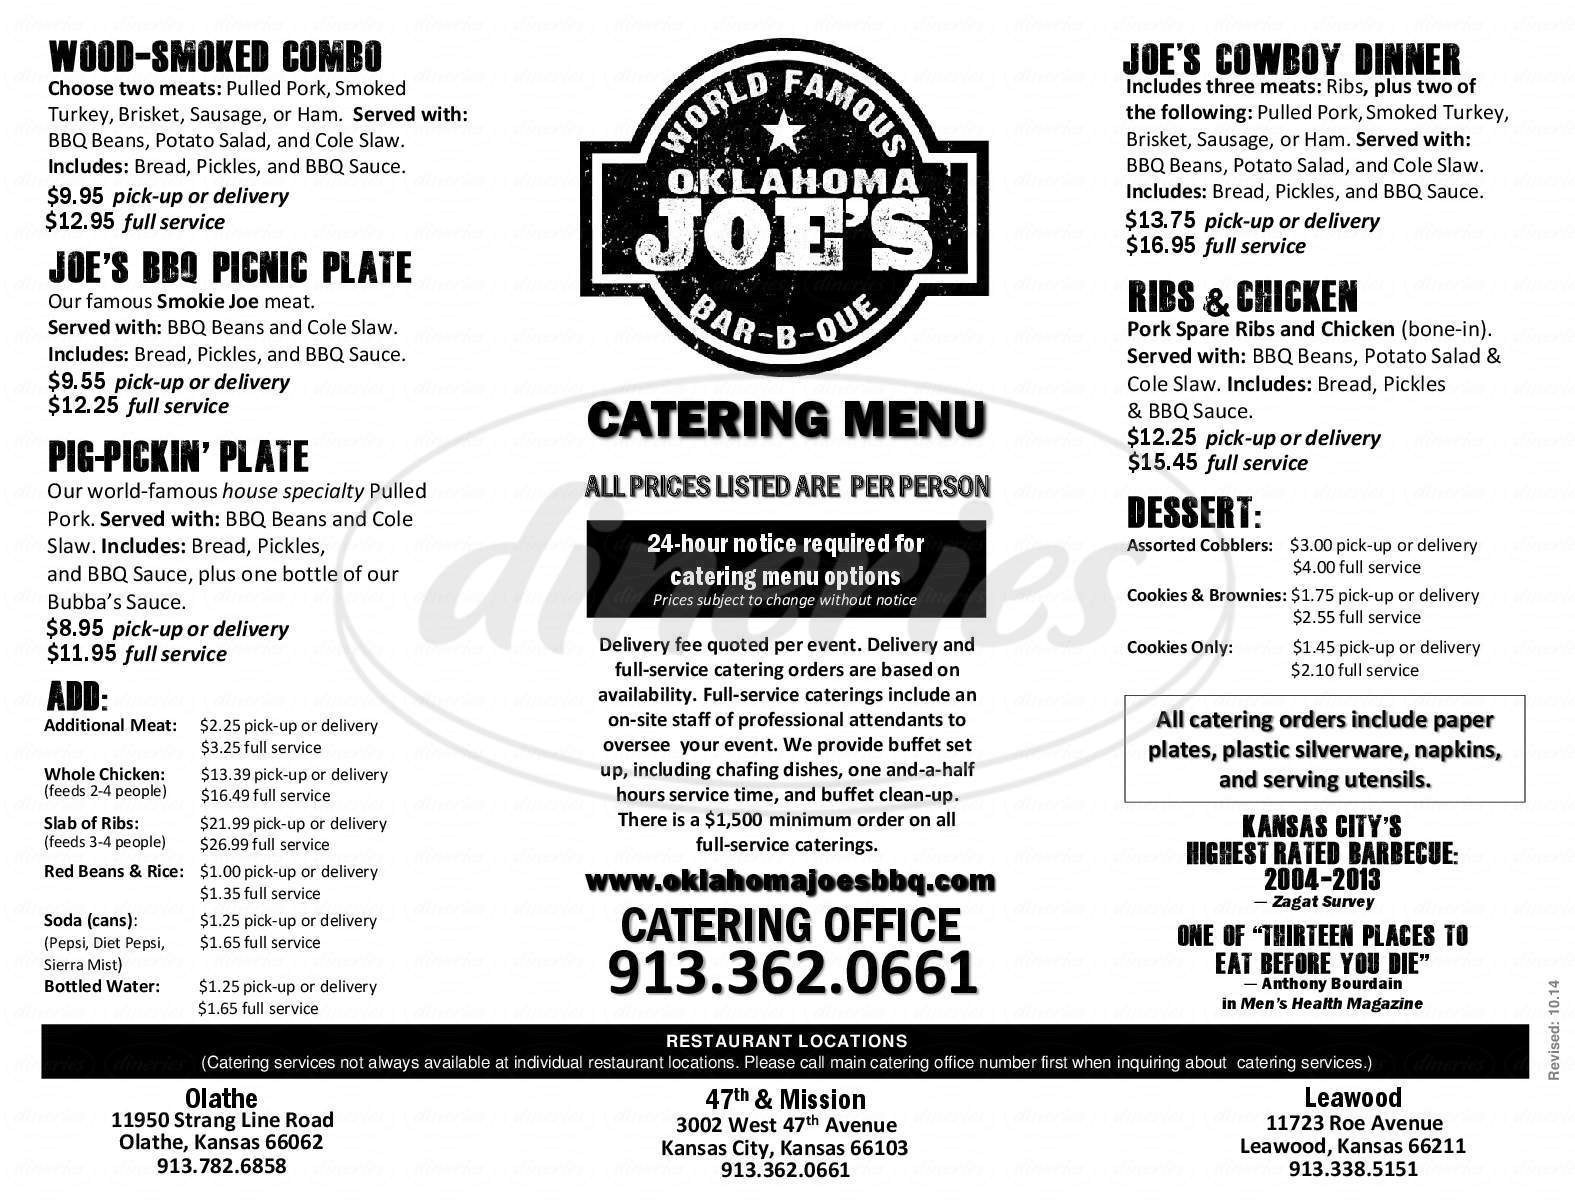 menu for Oklahoma Joe's